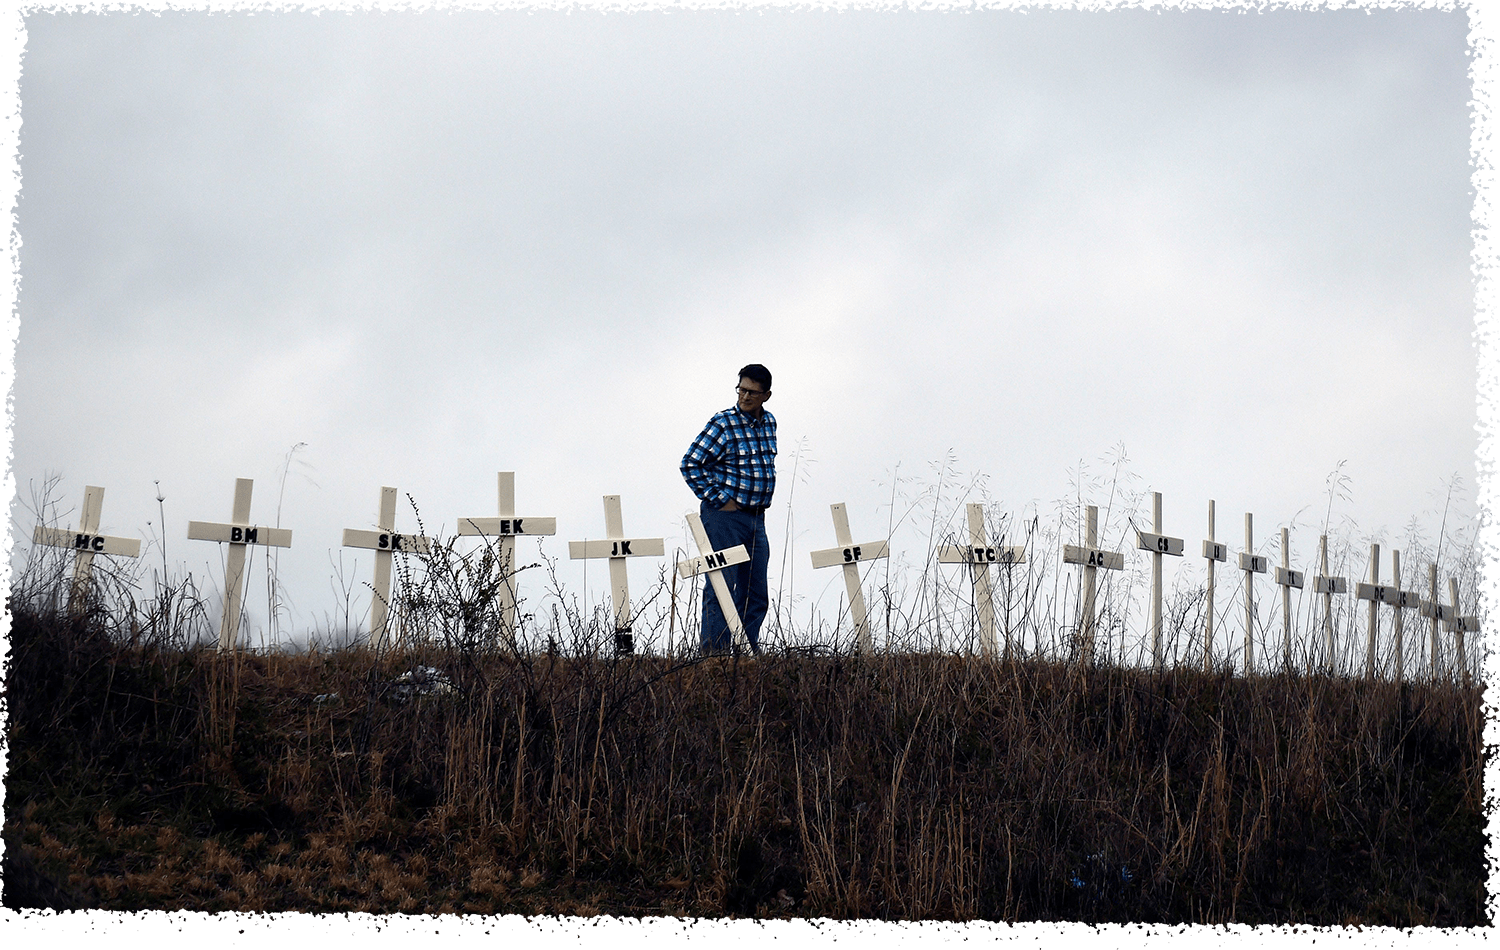 Allen Jingst looks at the 18 crosses erected on a small hill in memory of the victims who died in deadly tornadoes in Cookeville, Tenn.